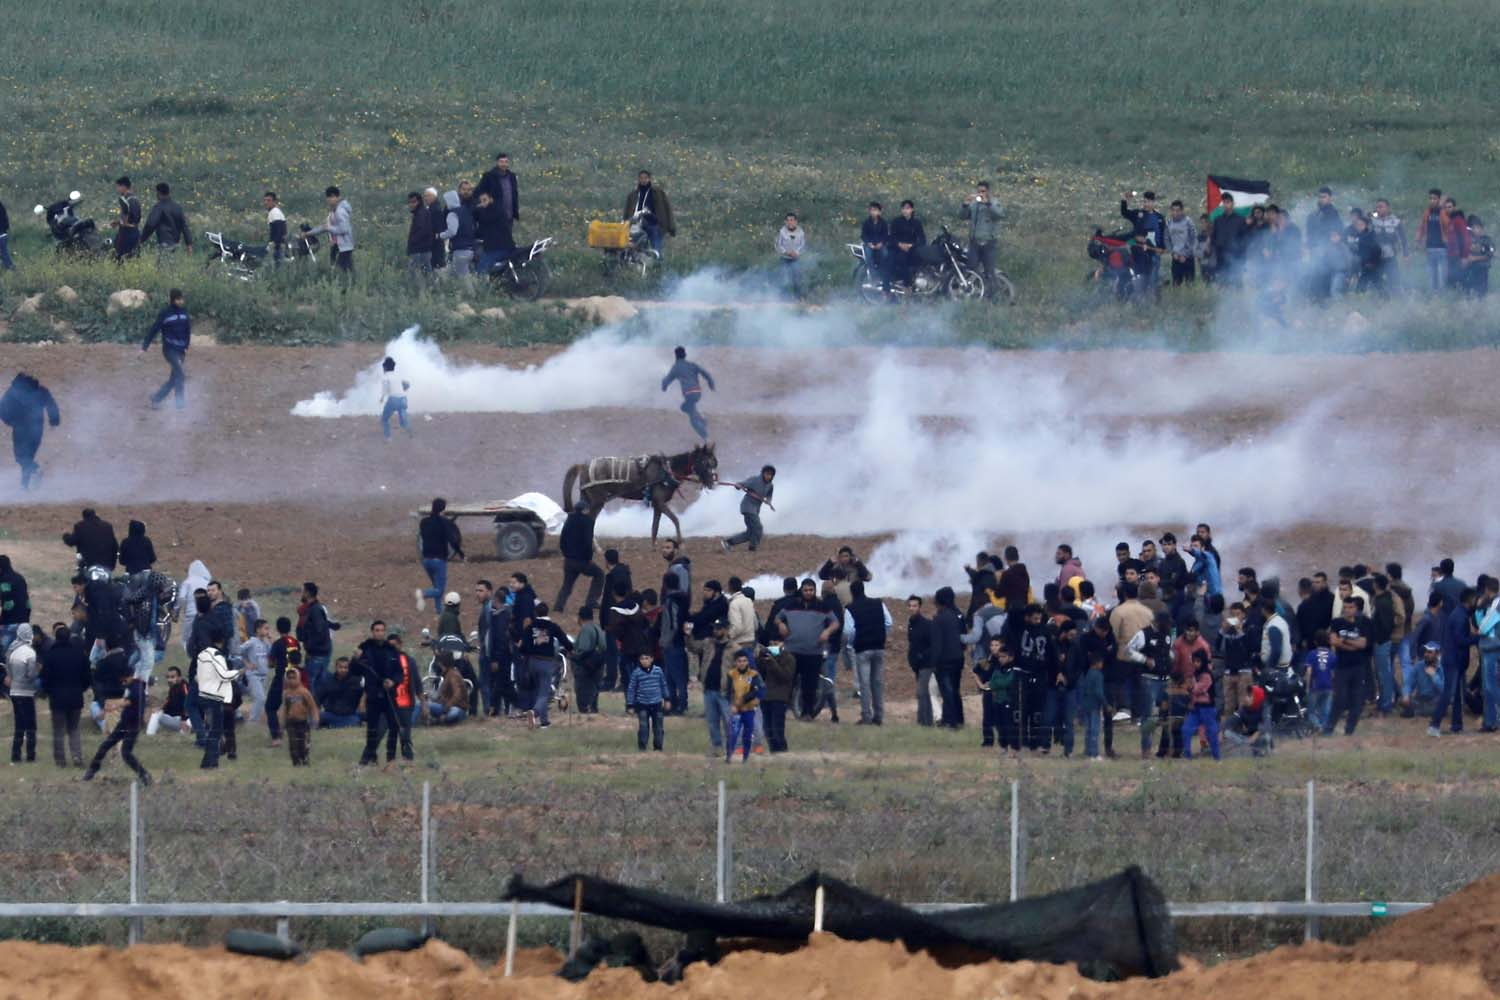 Palestinians run from tear gas on the Gaza side of the Israel-Gaza border, as seen from the Israeli side of the border, March 30, 2018. REUTERS/Amir Cohen